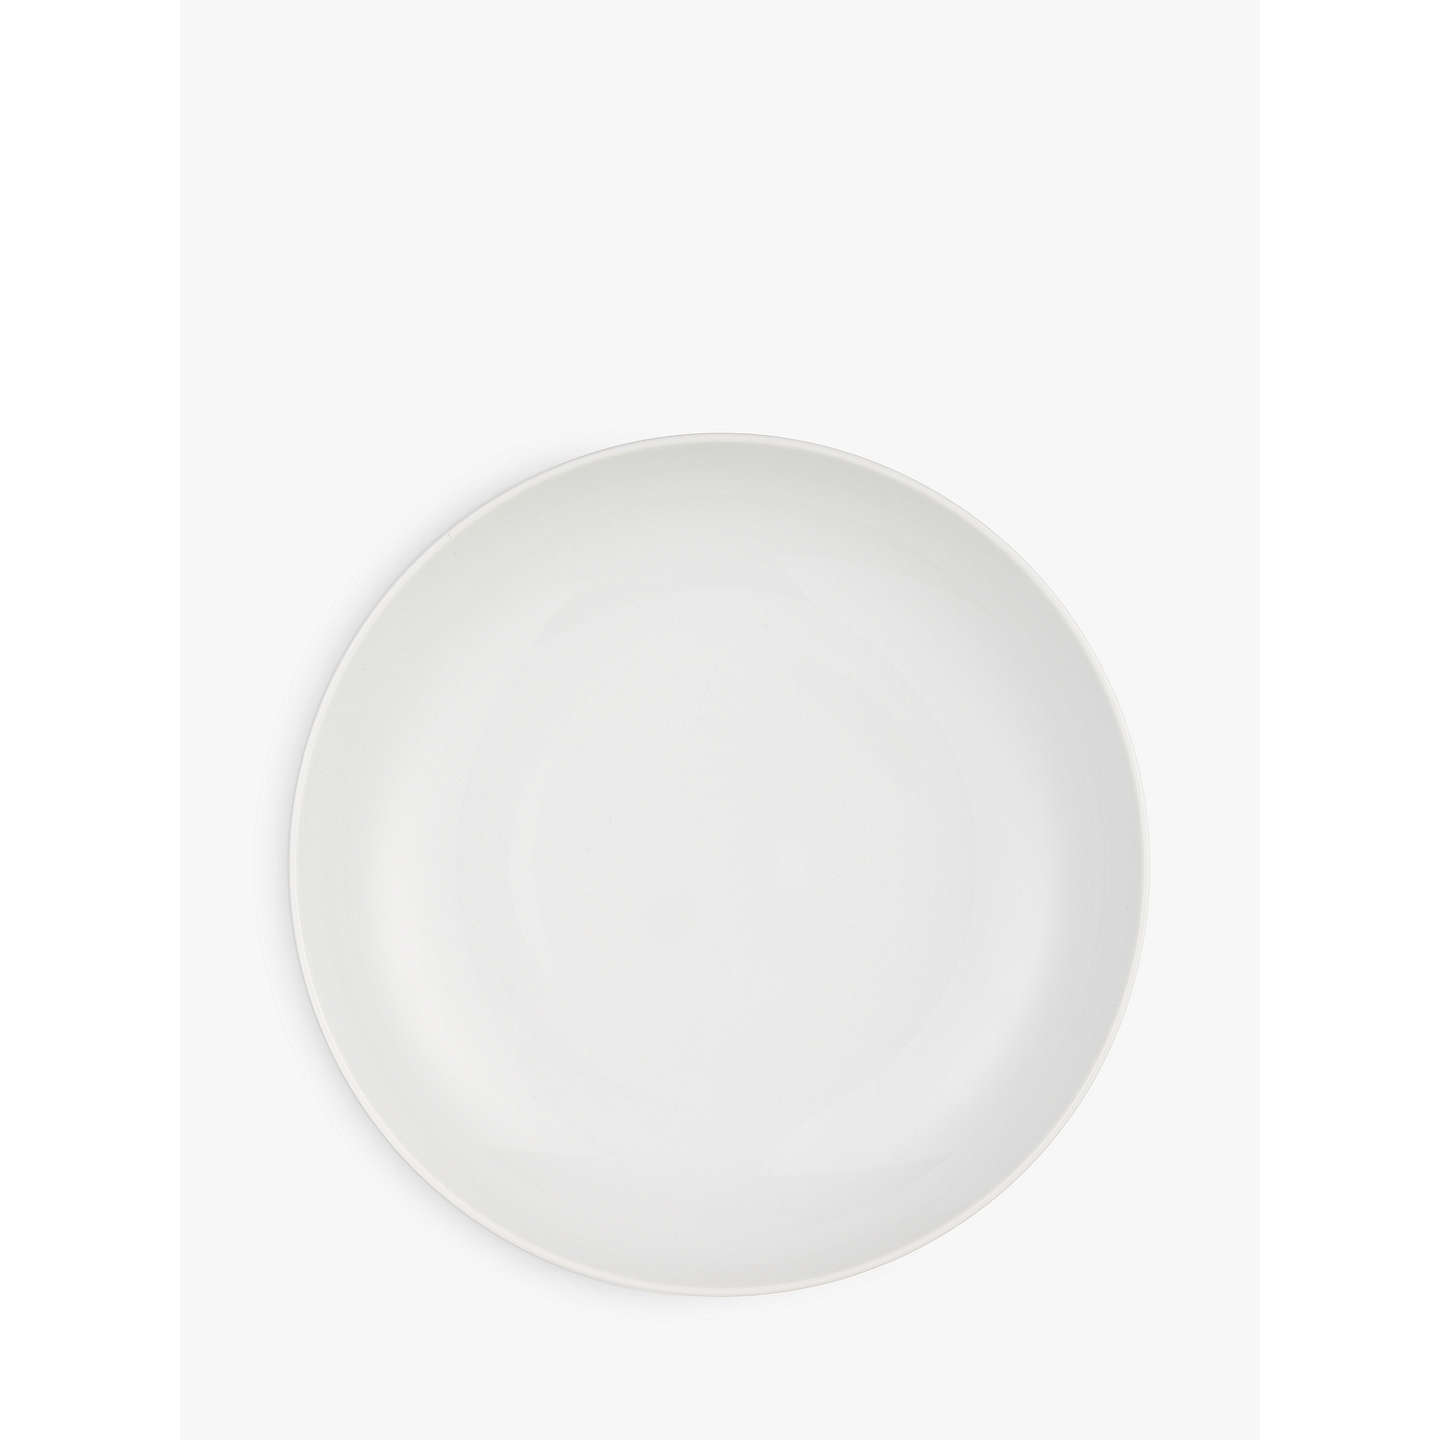 BuyHouse by John Lewis Eat 24.5cm Coupe Pasta Bowl, White Online at johnlewis.com